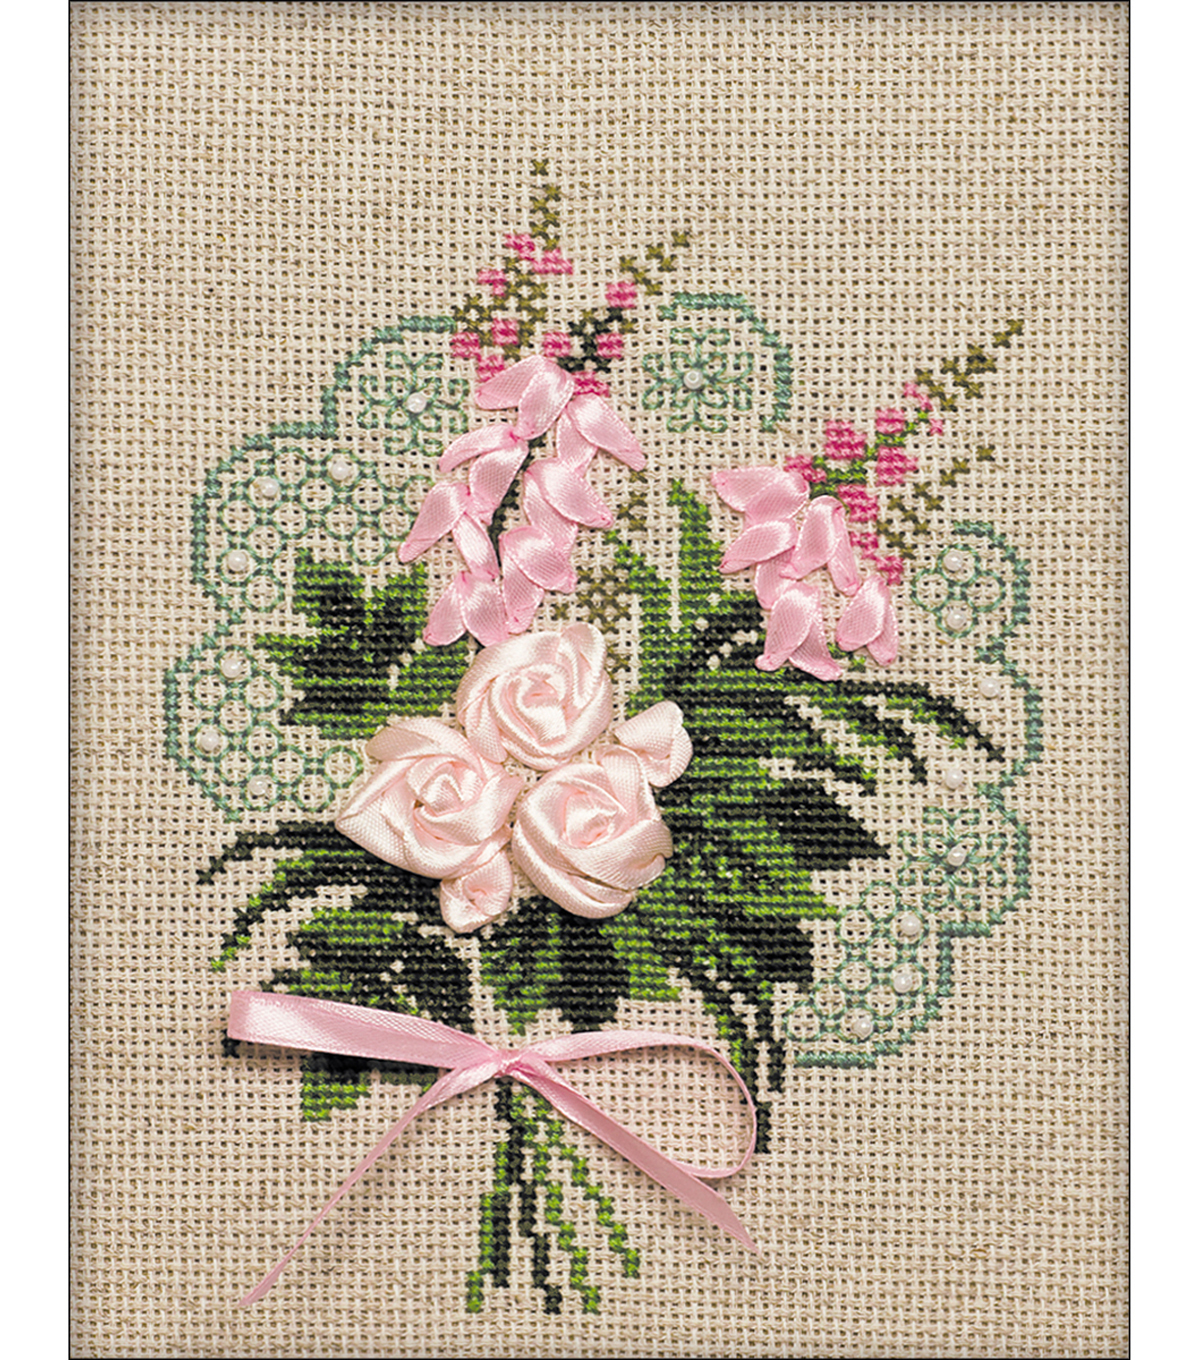 RIOLIS 7\u0027\u0027x9\u0027\u0027 Counted Cross Stitch Kit-Bouquet of Tenderness